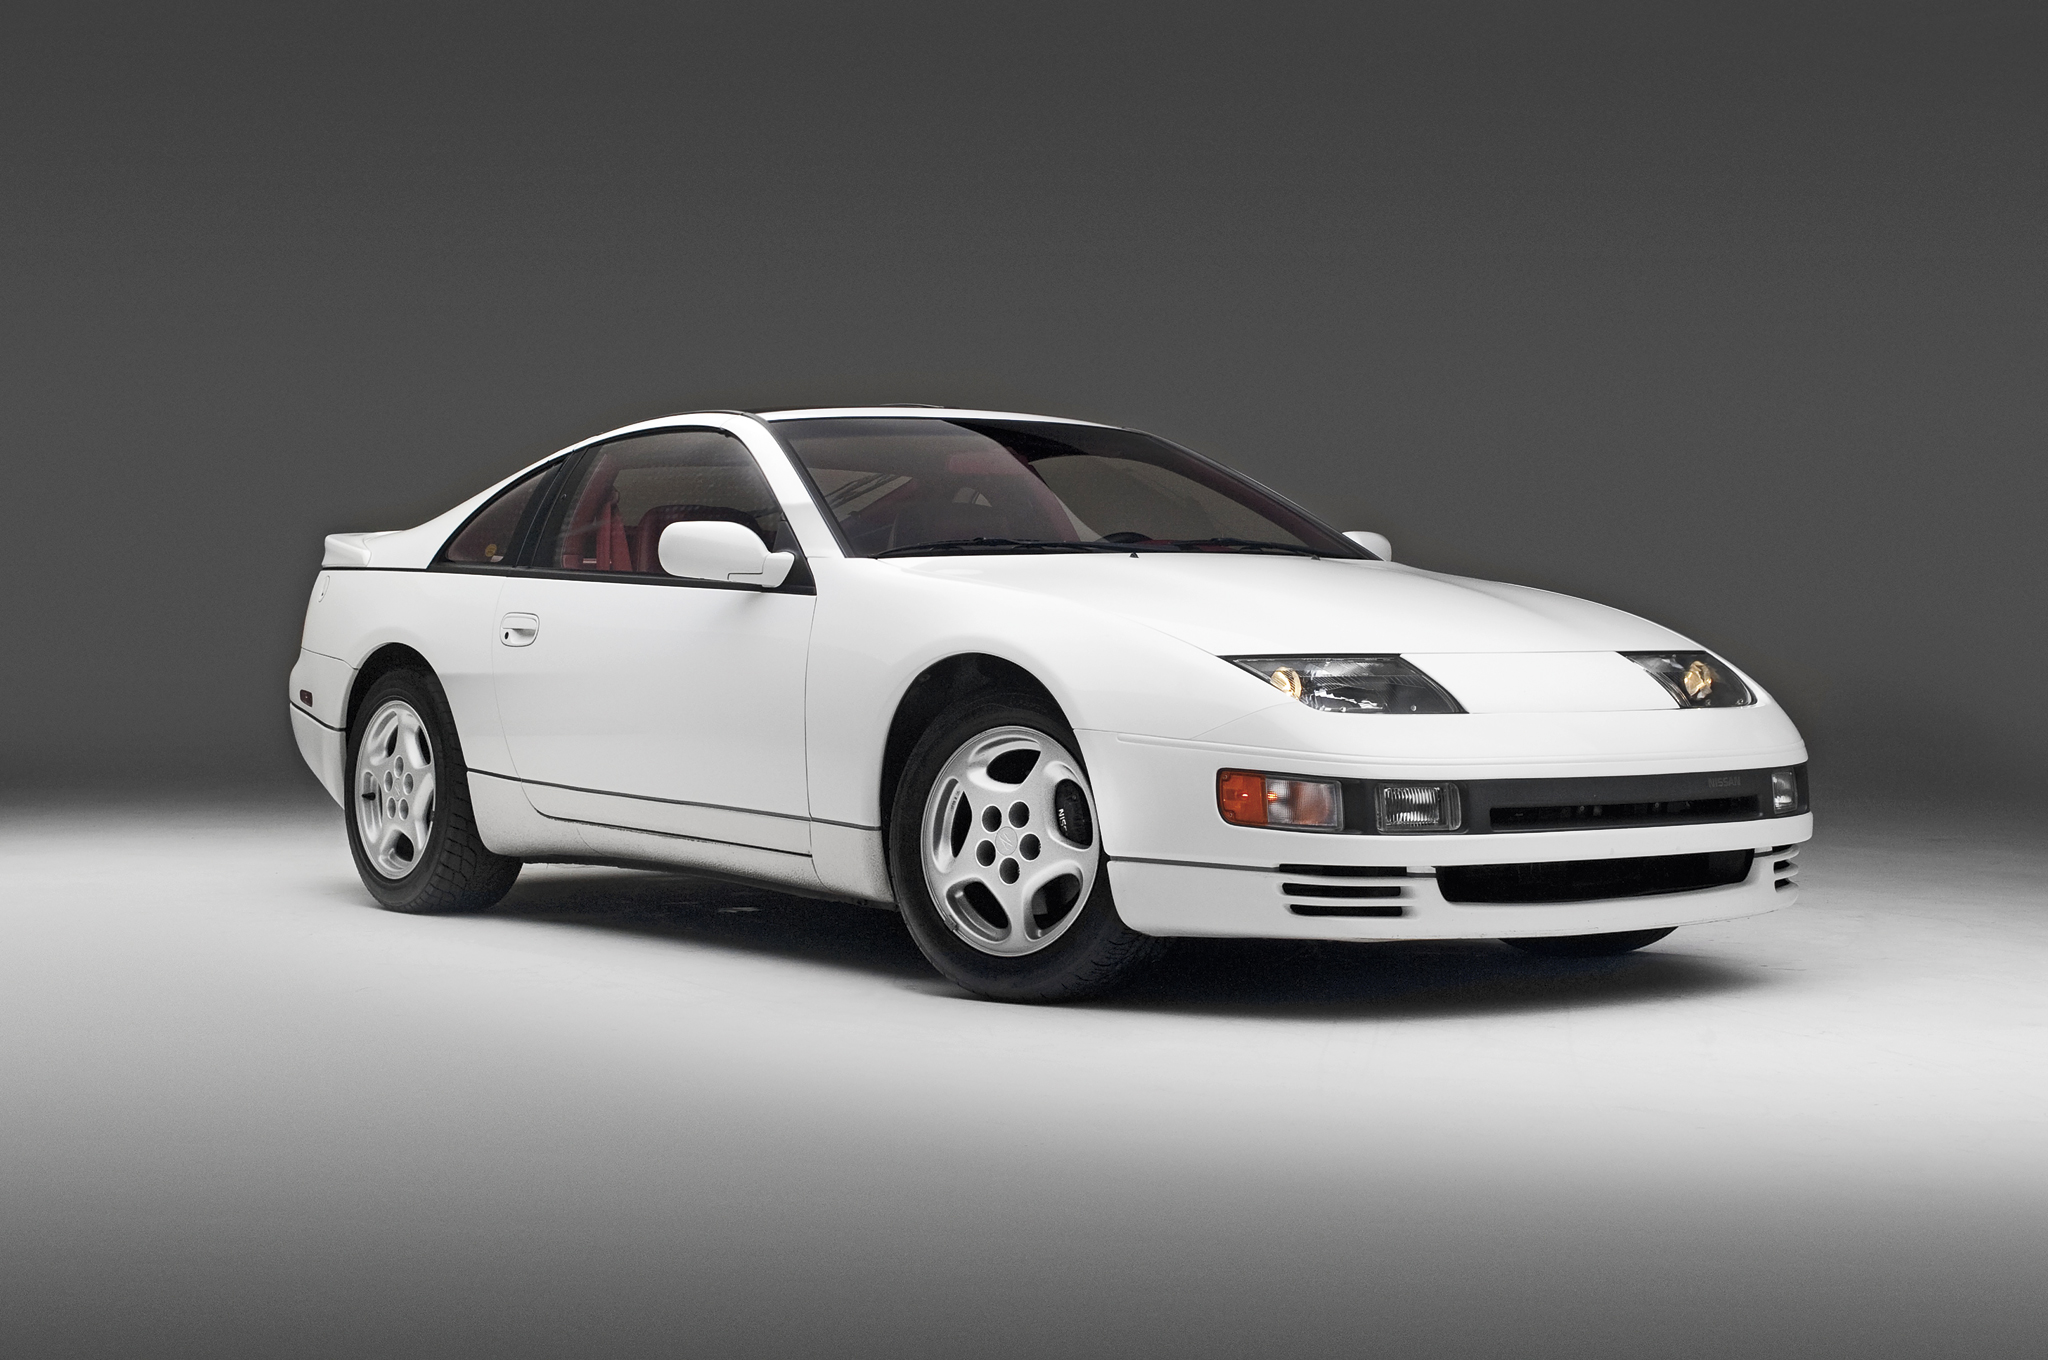 90 300zx Wiring Schematic Electrical Diagram Z32 Transmission Have A Nissan Non Turbo Has No 80 Body